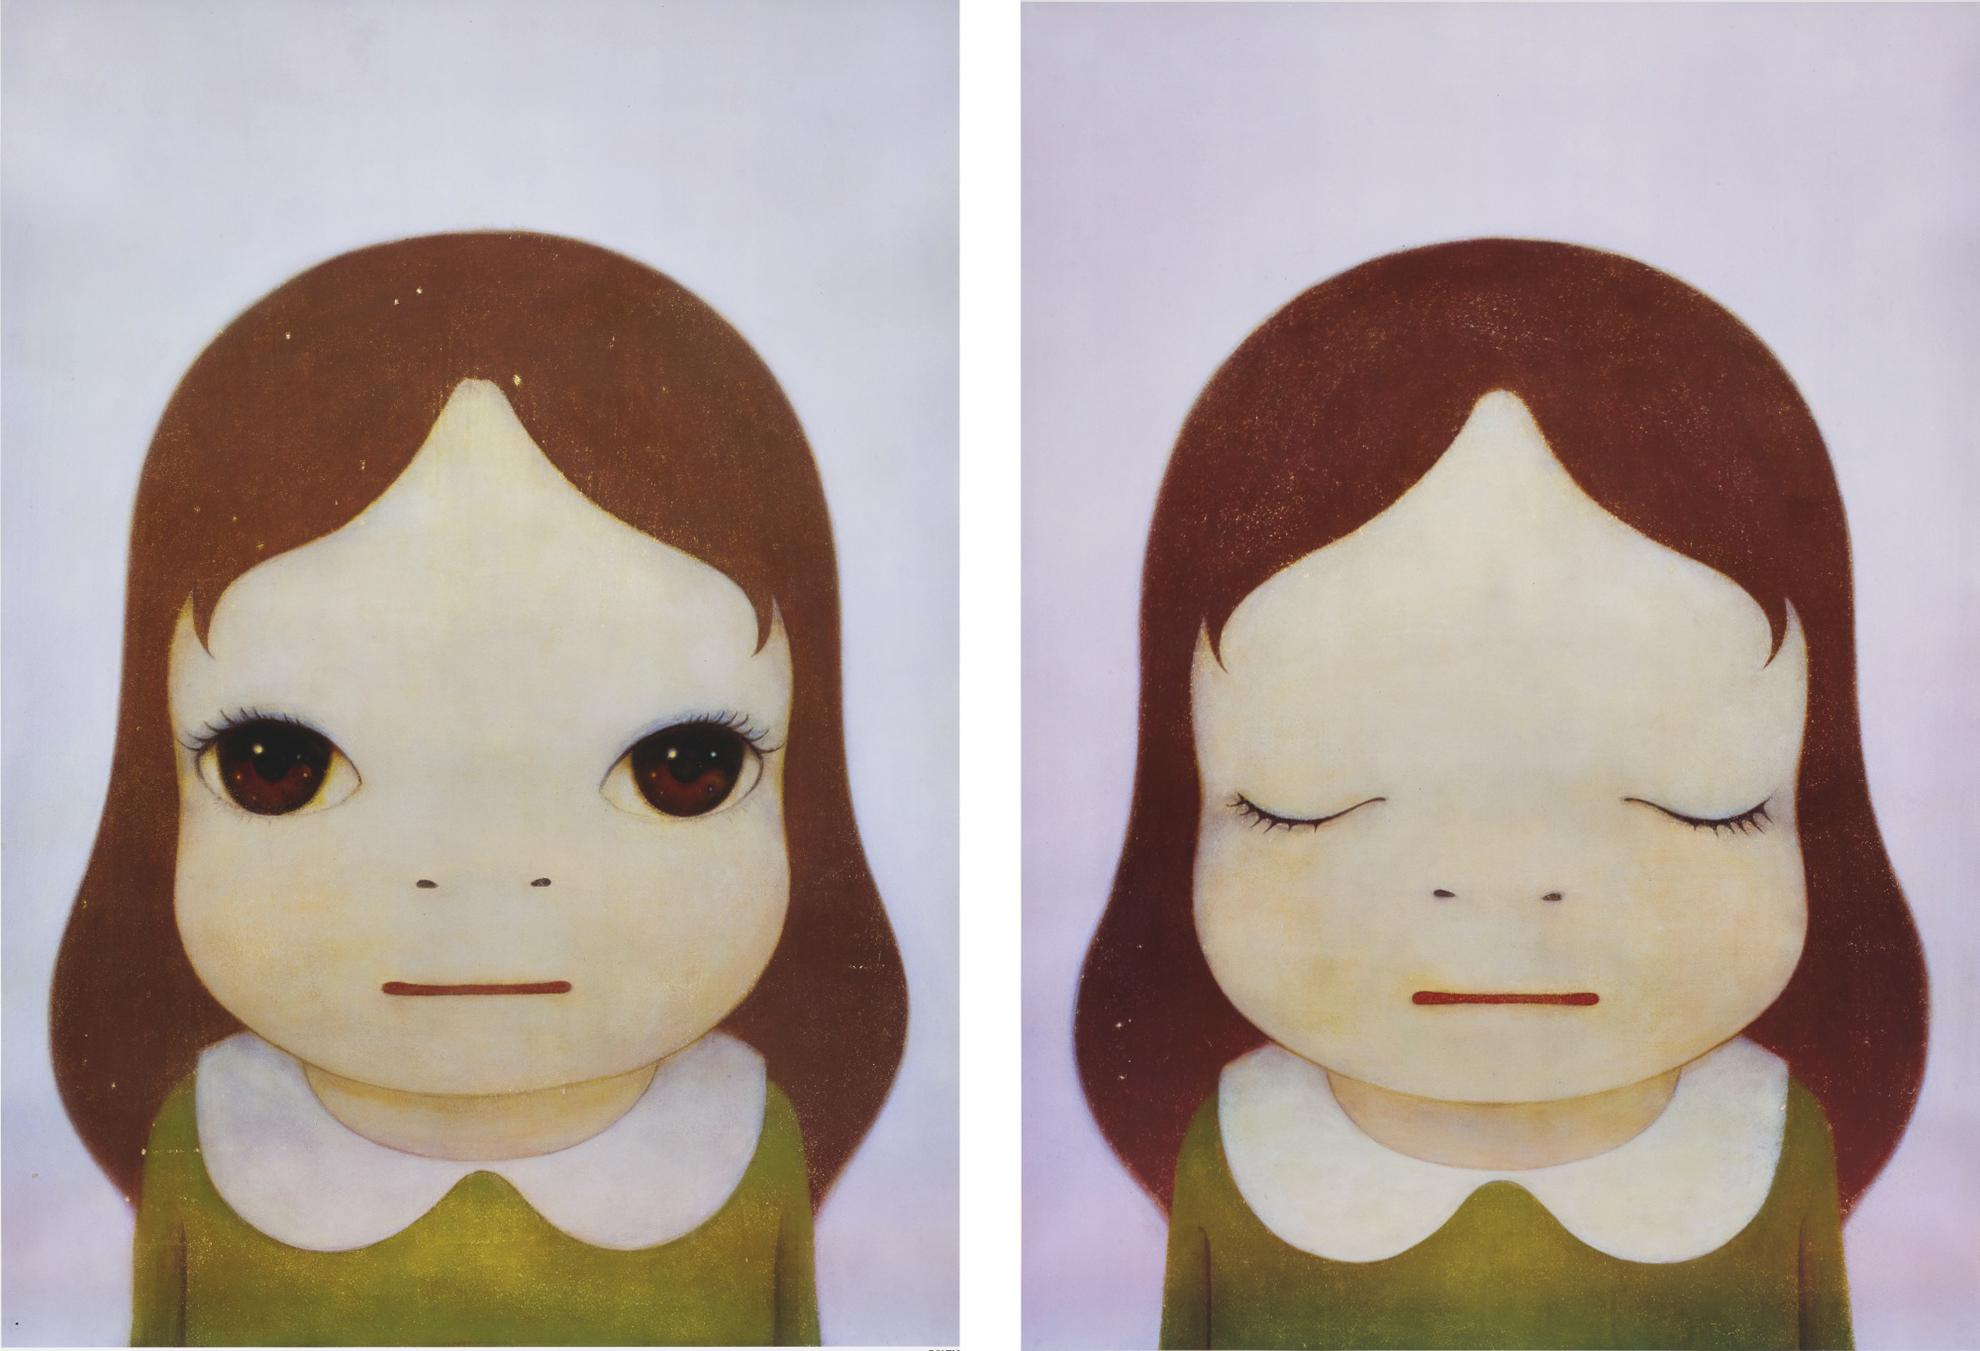 Yoshitomo Nara-Cosmic Girls: Eyes Opened/ Eyes Closed (Two Works)-2008